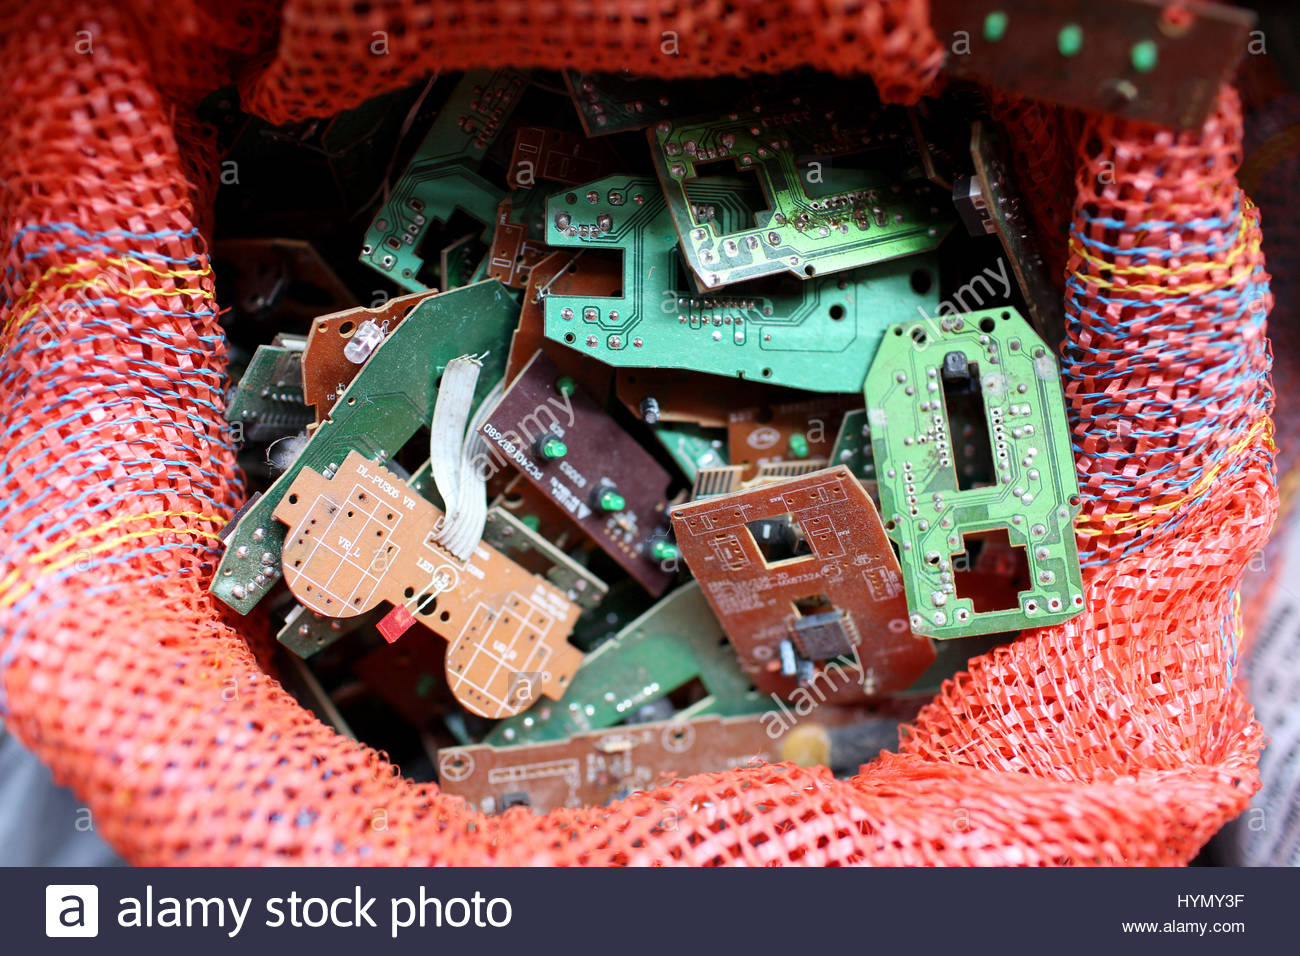 E Waste Stock Photos Images Alamy Recycled Circuit Board Small Notebook Boards In A Bag Village Near Kolkata Whose Residents Recycle